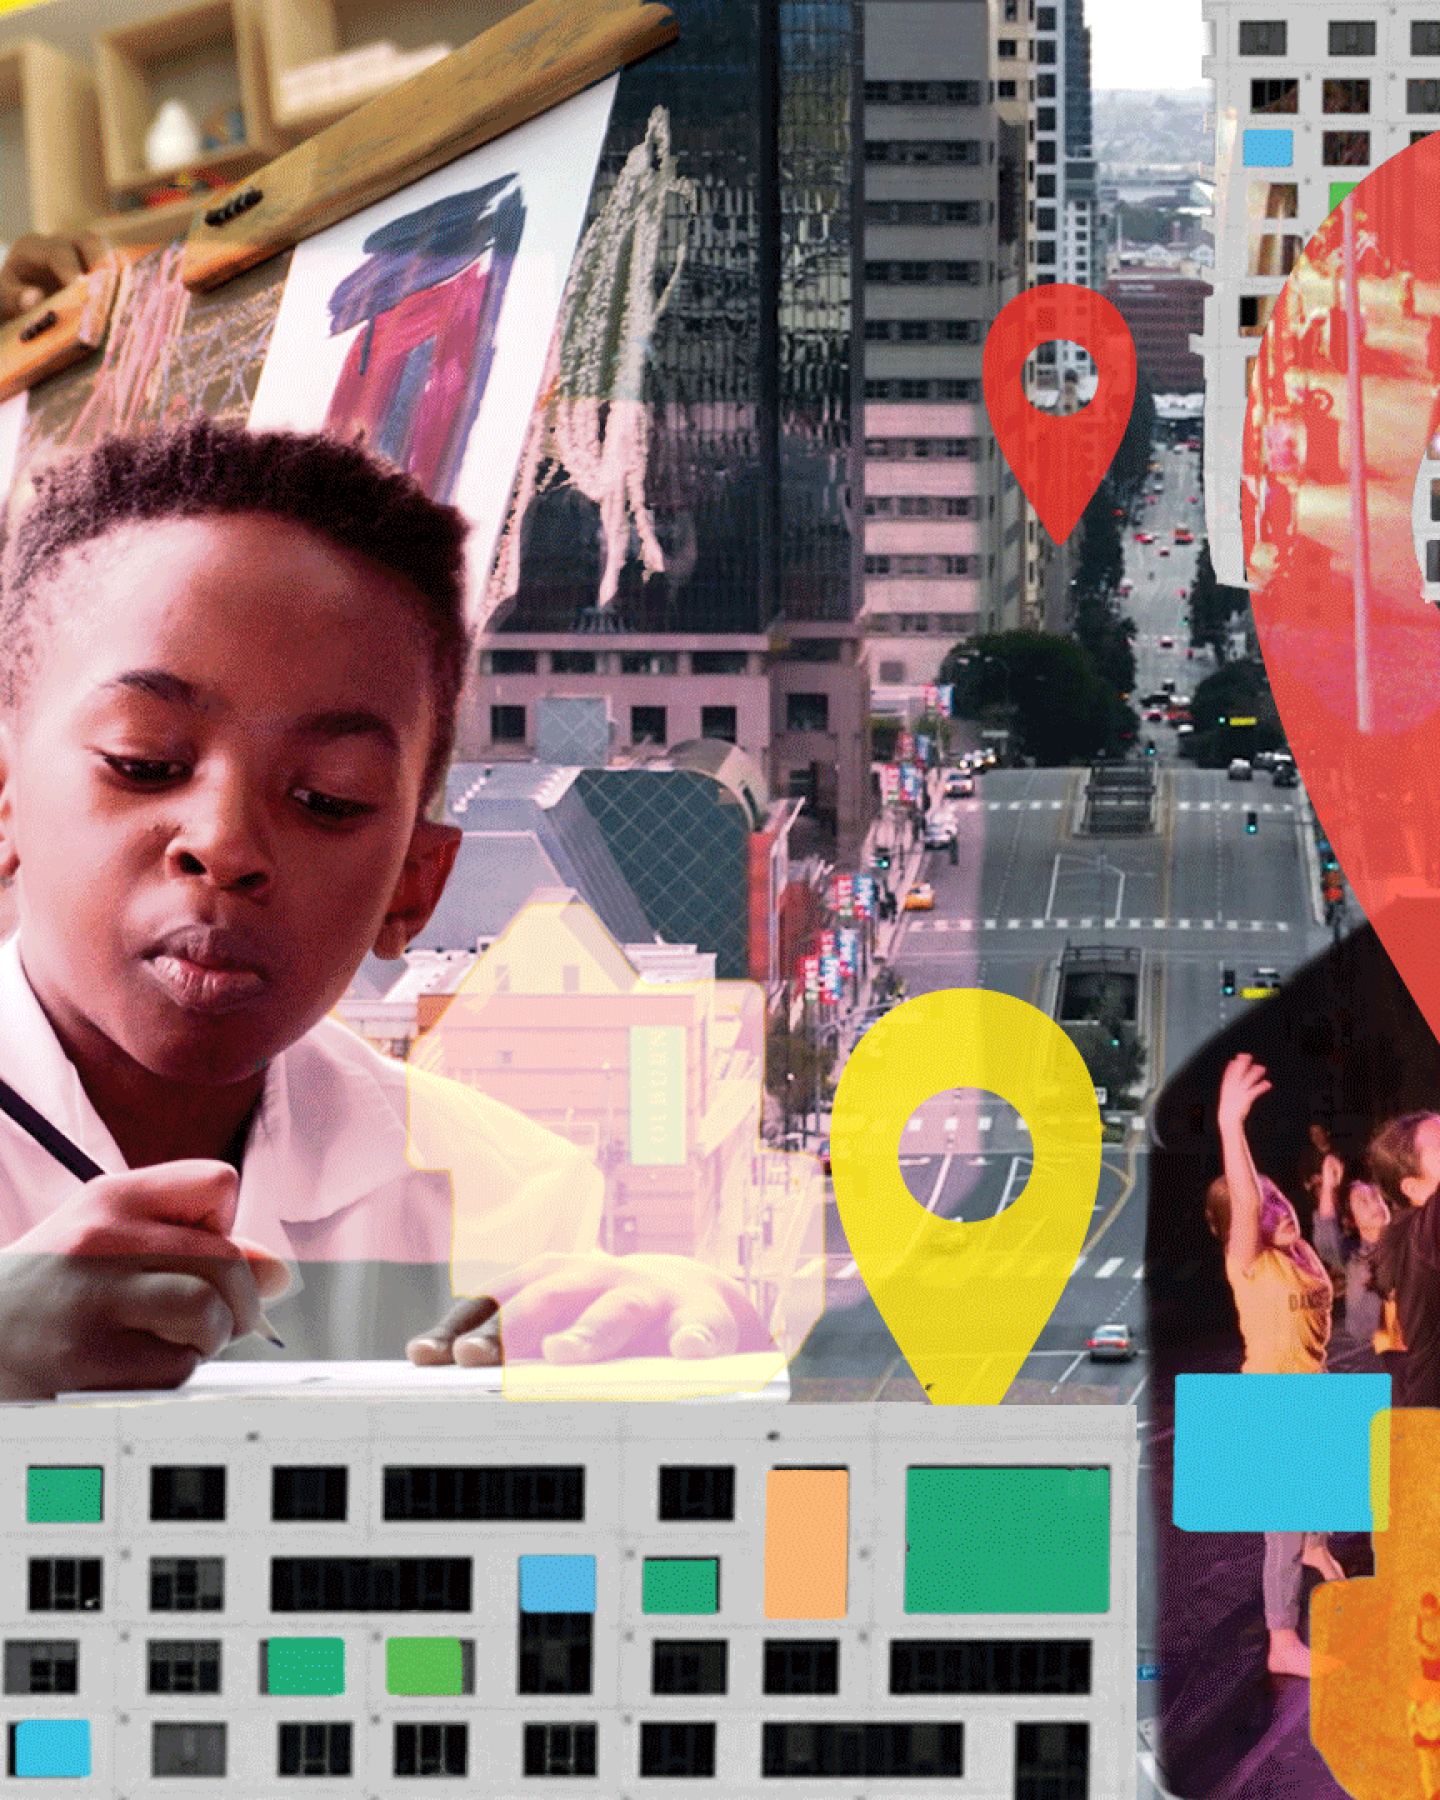 Children and youth engage in arts education throughout Los Angeles County.